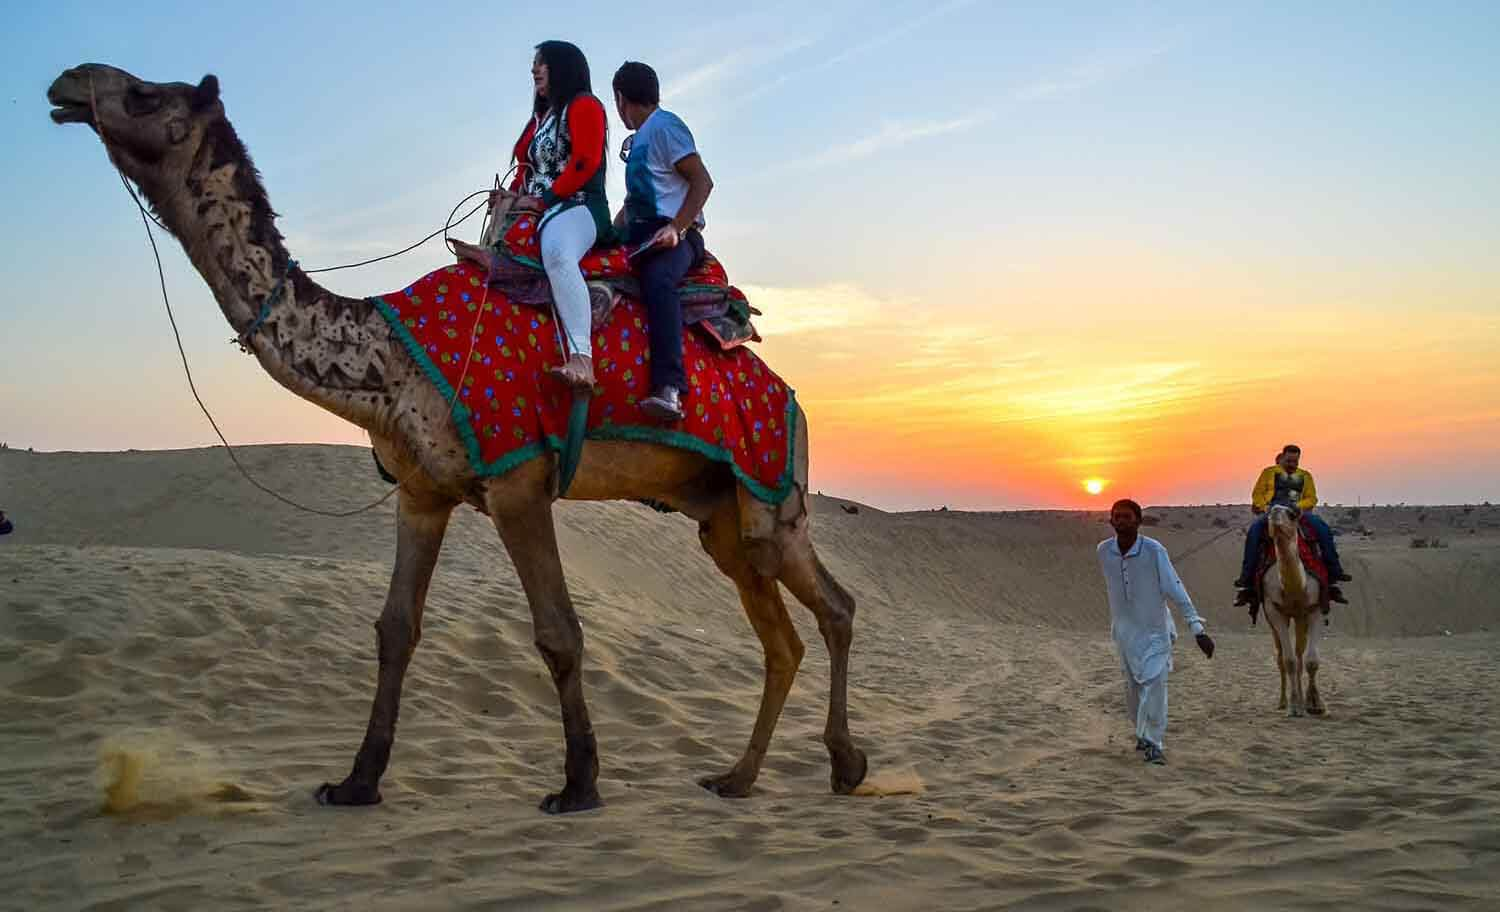 Rajasthan: Riding Through The Sands Of Time